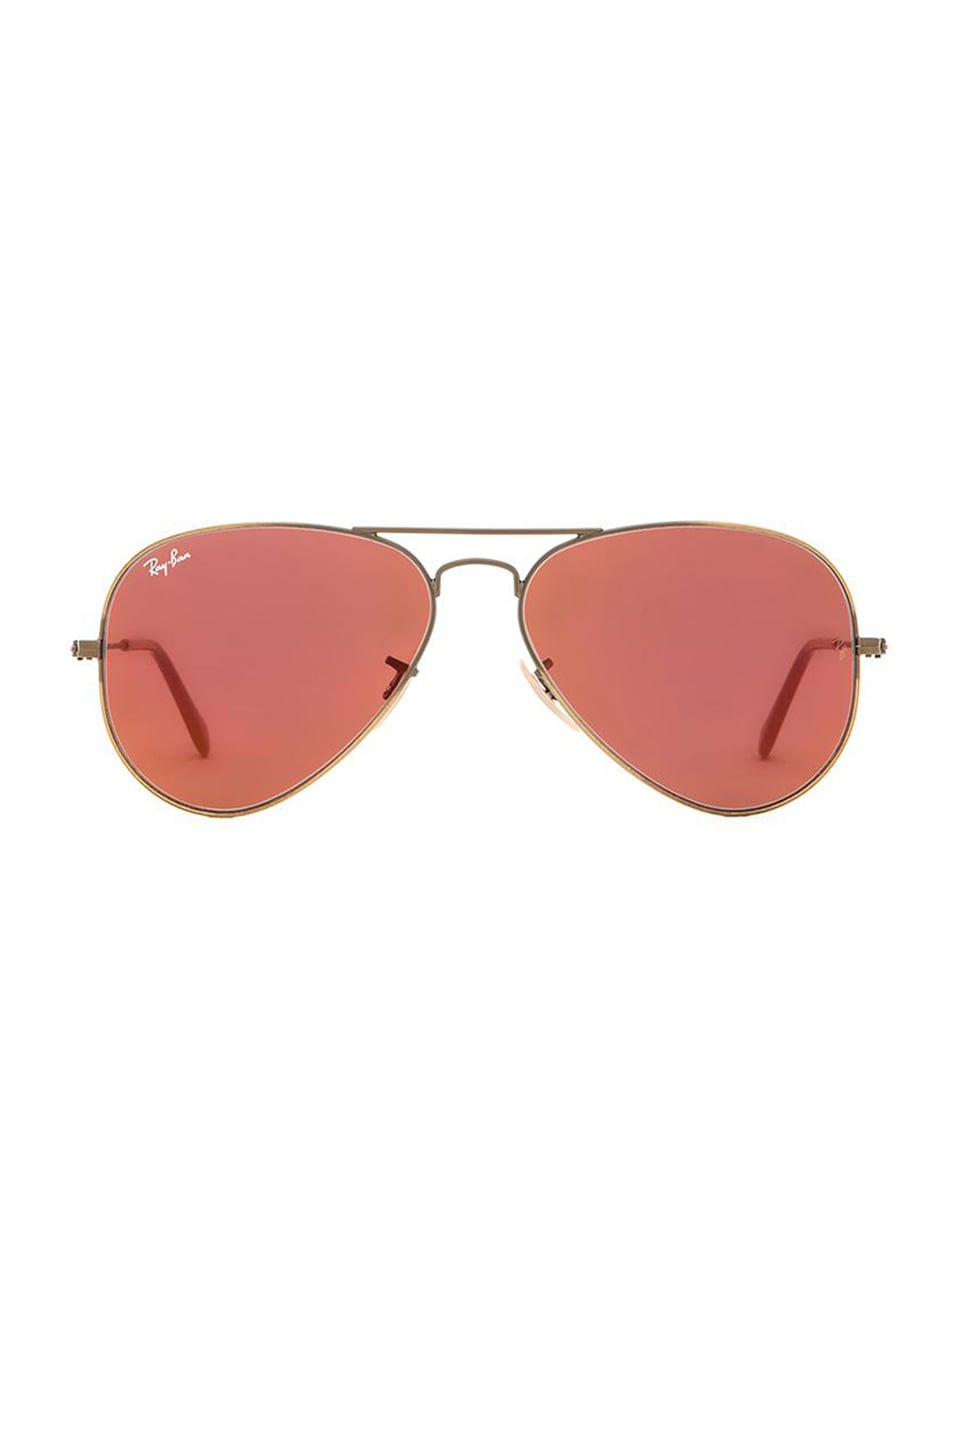 red ray ban aviators  Ray-Ban Aviator Flash Lenses in Bronze Copper \u0026 Red Mirror